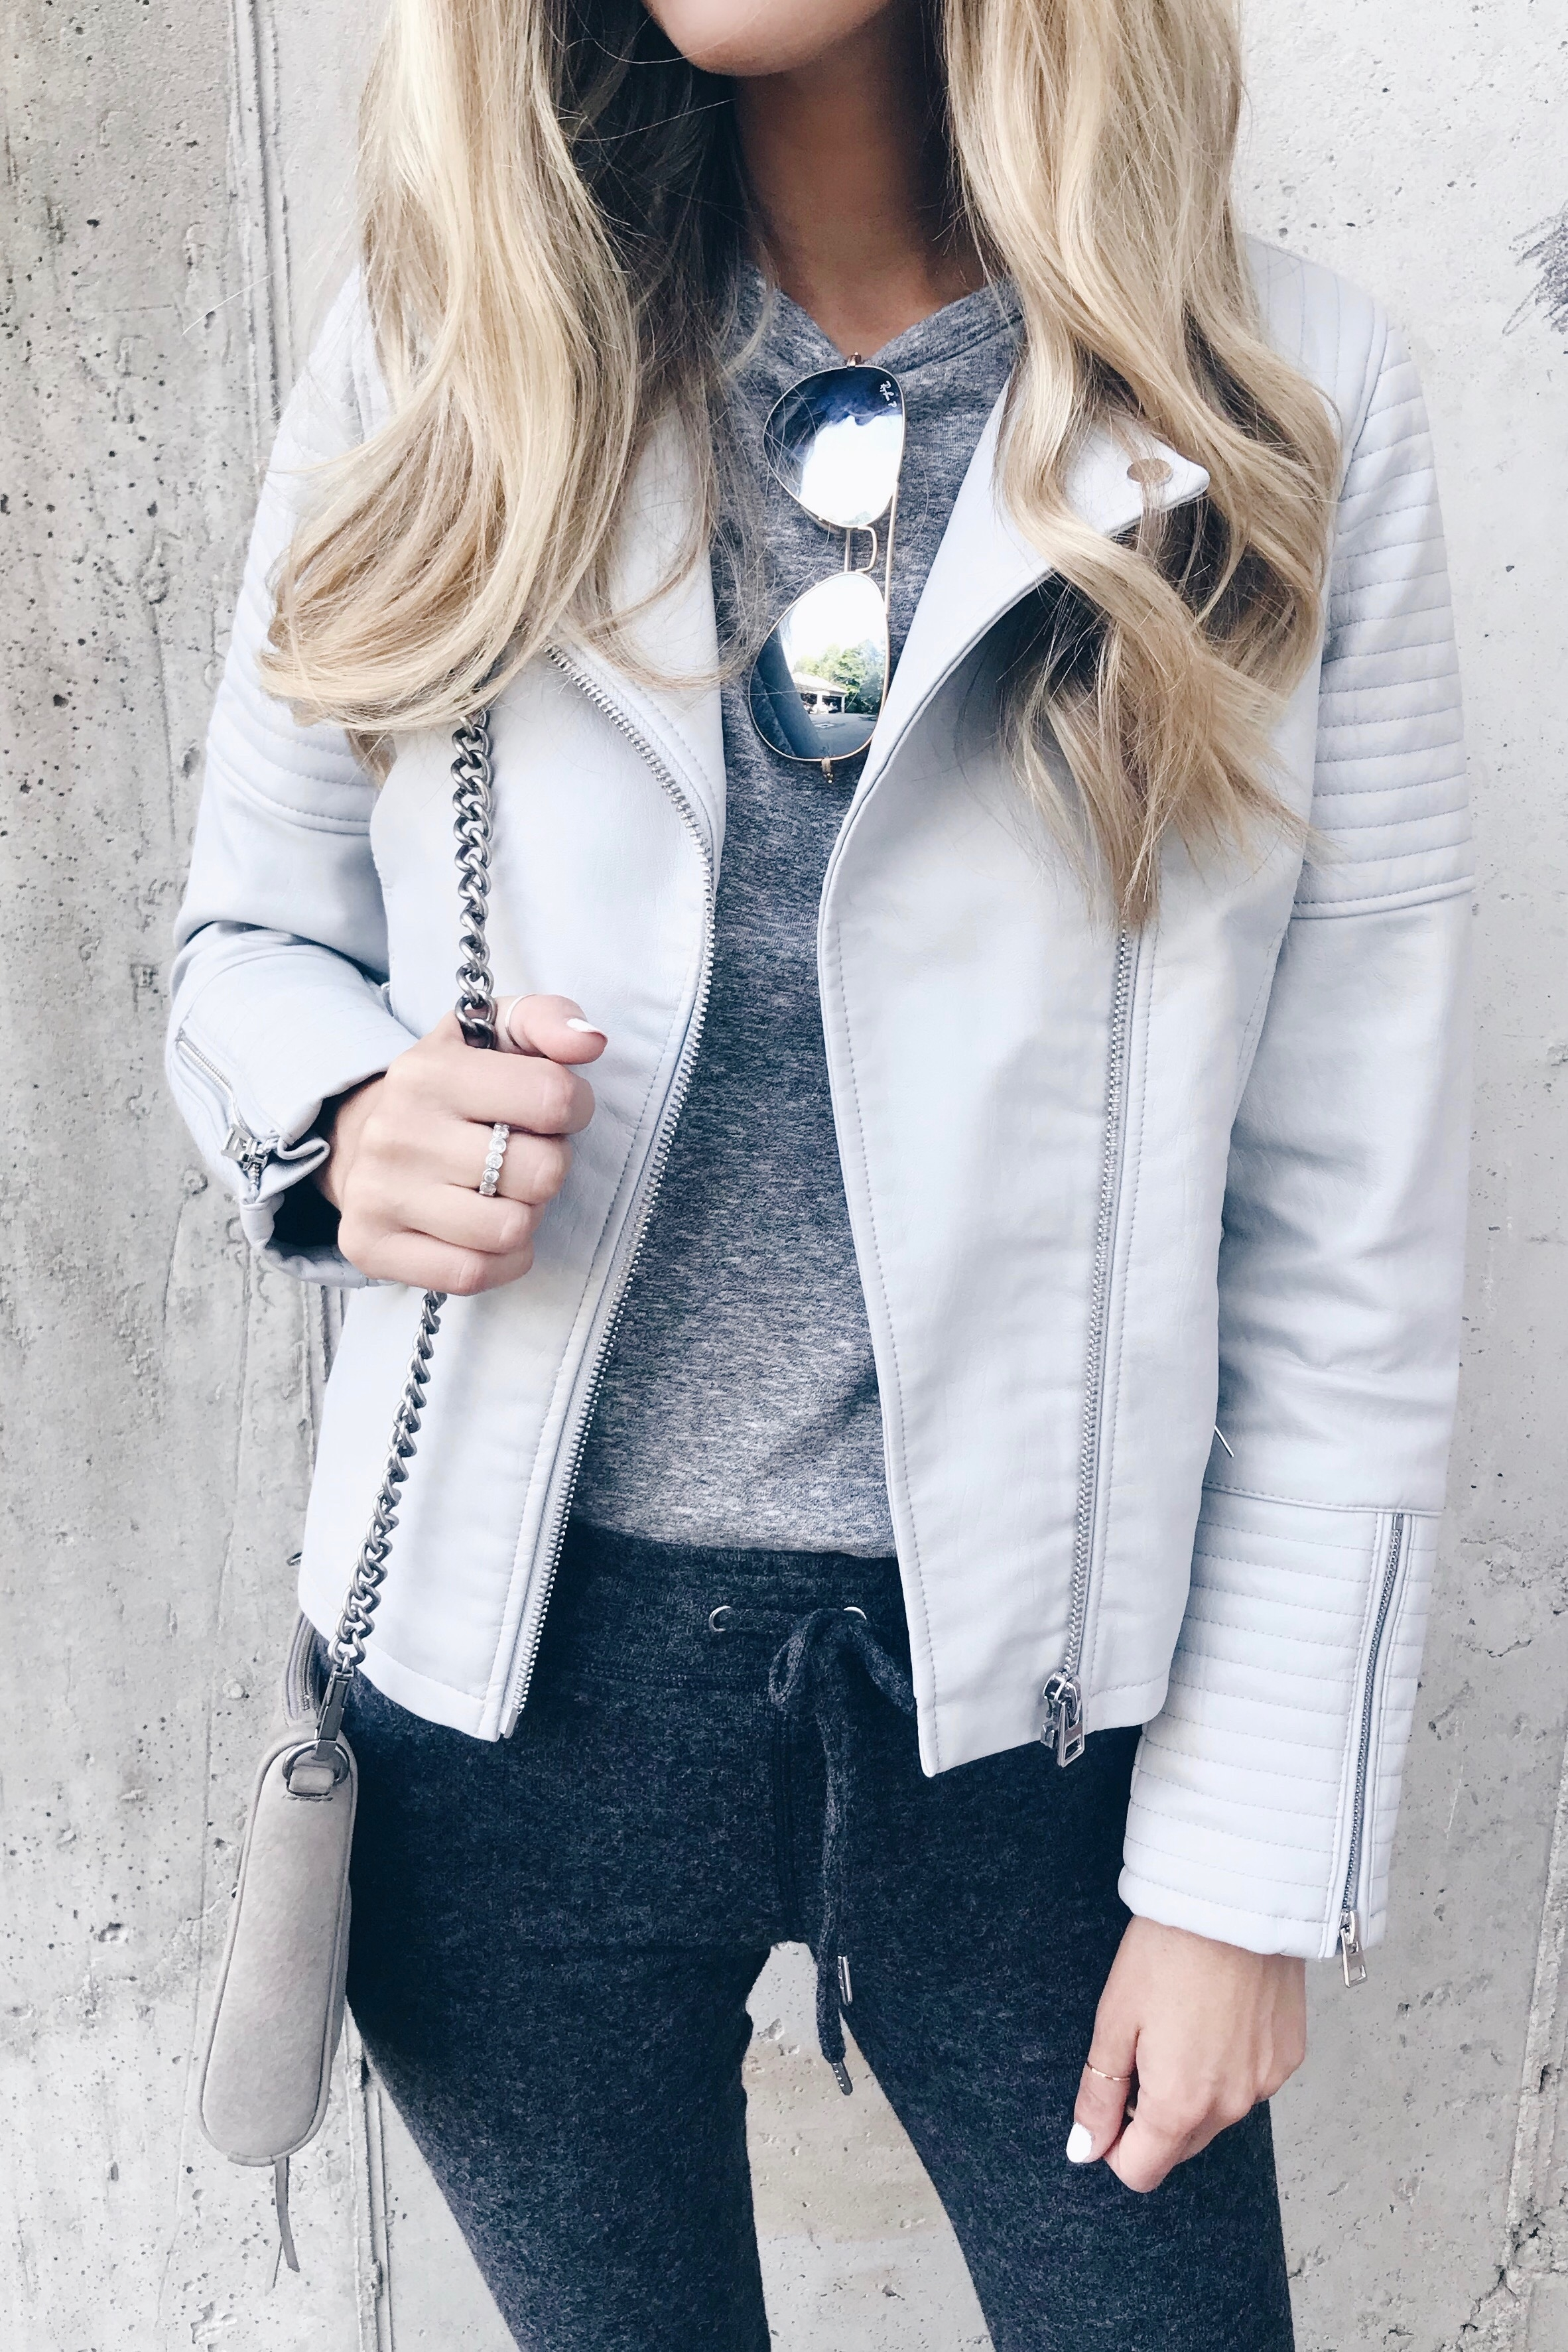 Athleisure outfit - topshop moto jacket and joggers on Pinteresting Plans fashion blog